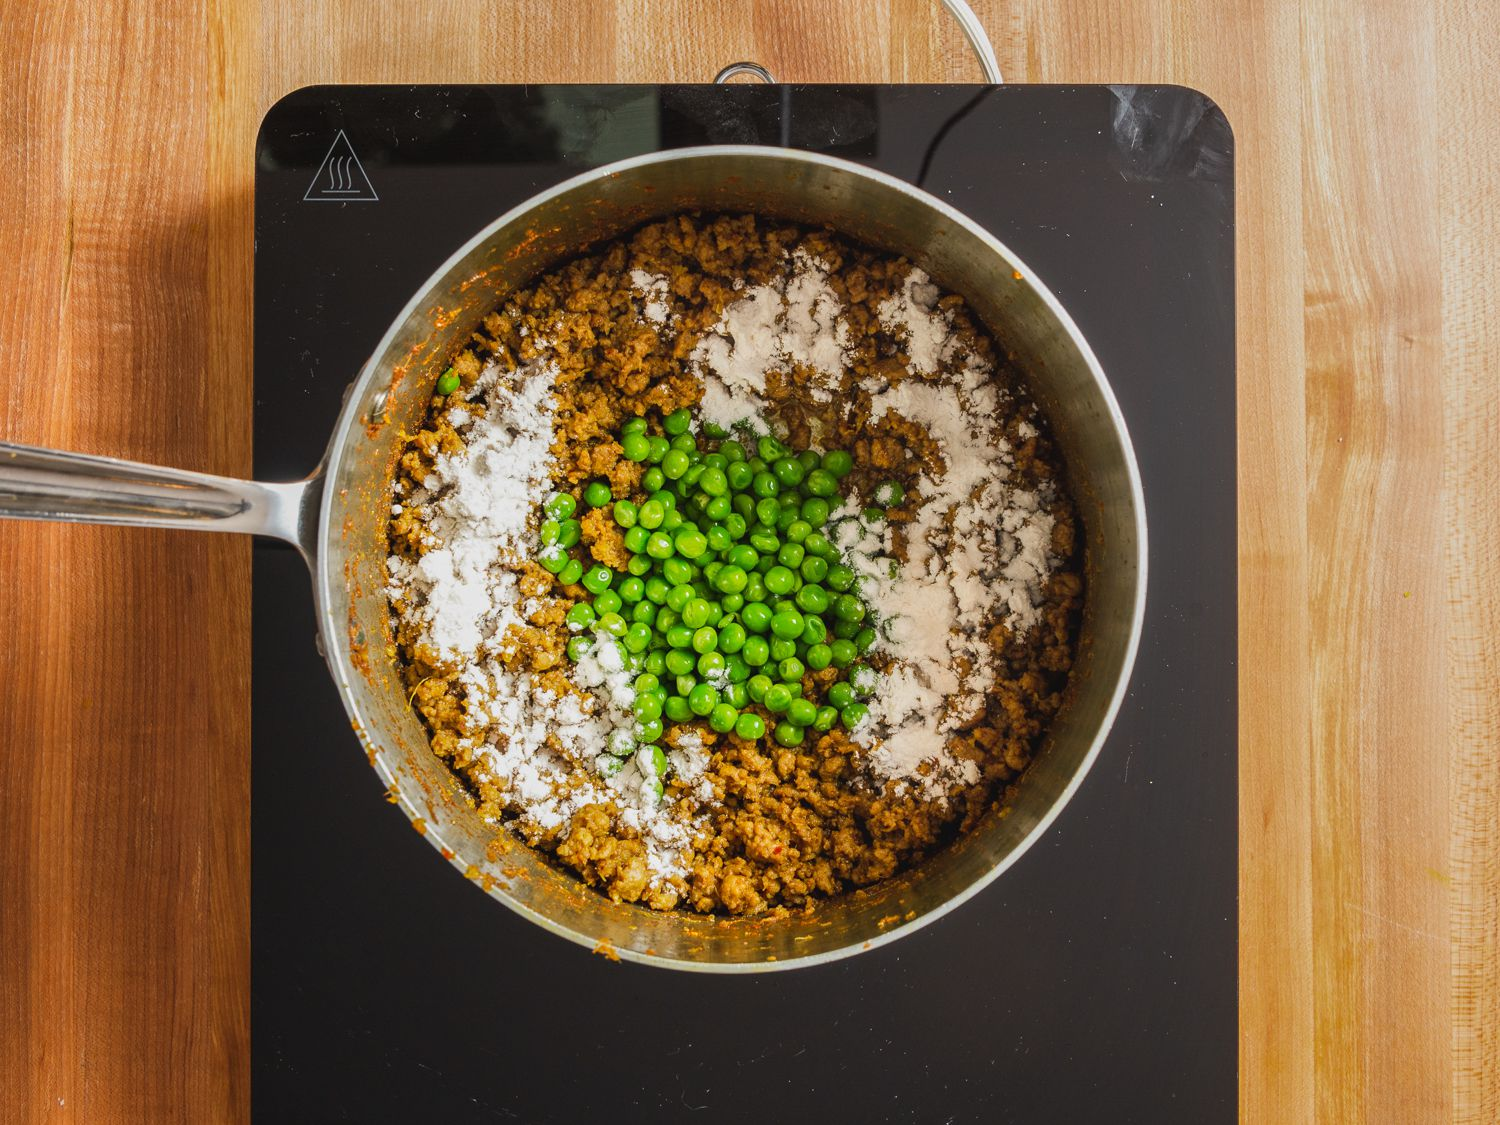 Overhead photo of peas and flour added on top of lamb kheema mixture in a saucepan